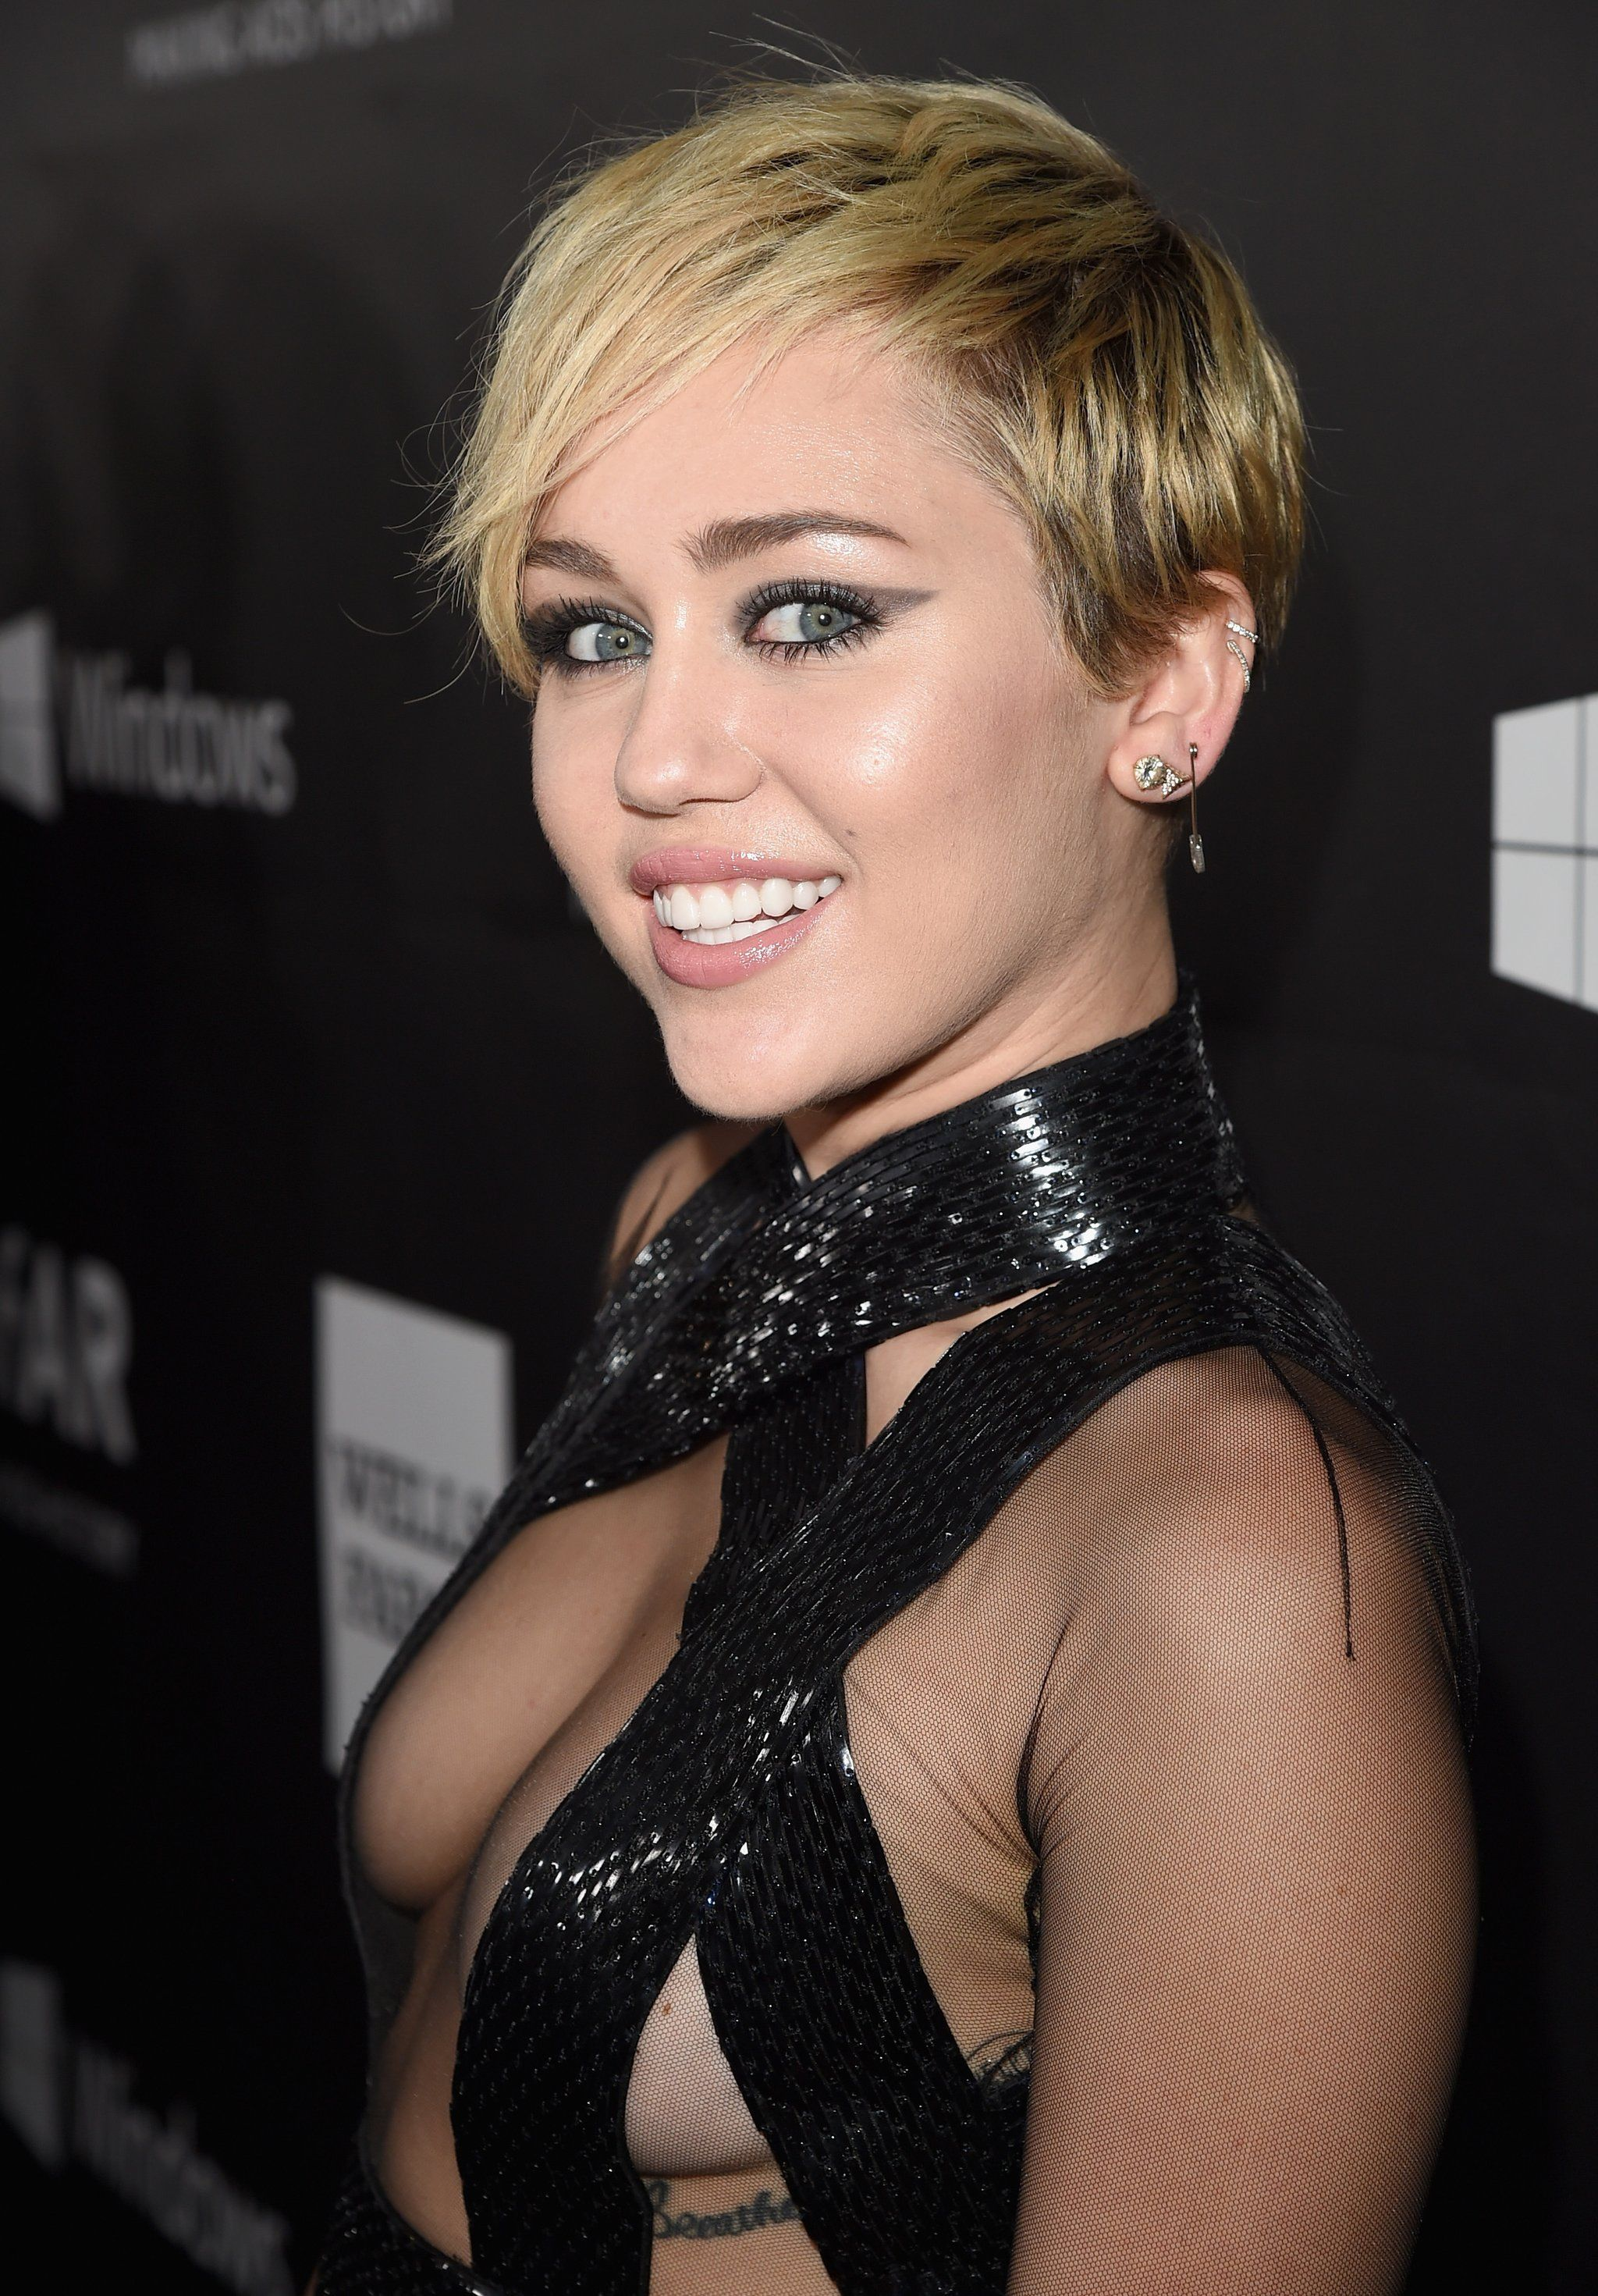 Cleavage Miley May naked (97 photos), Leaked